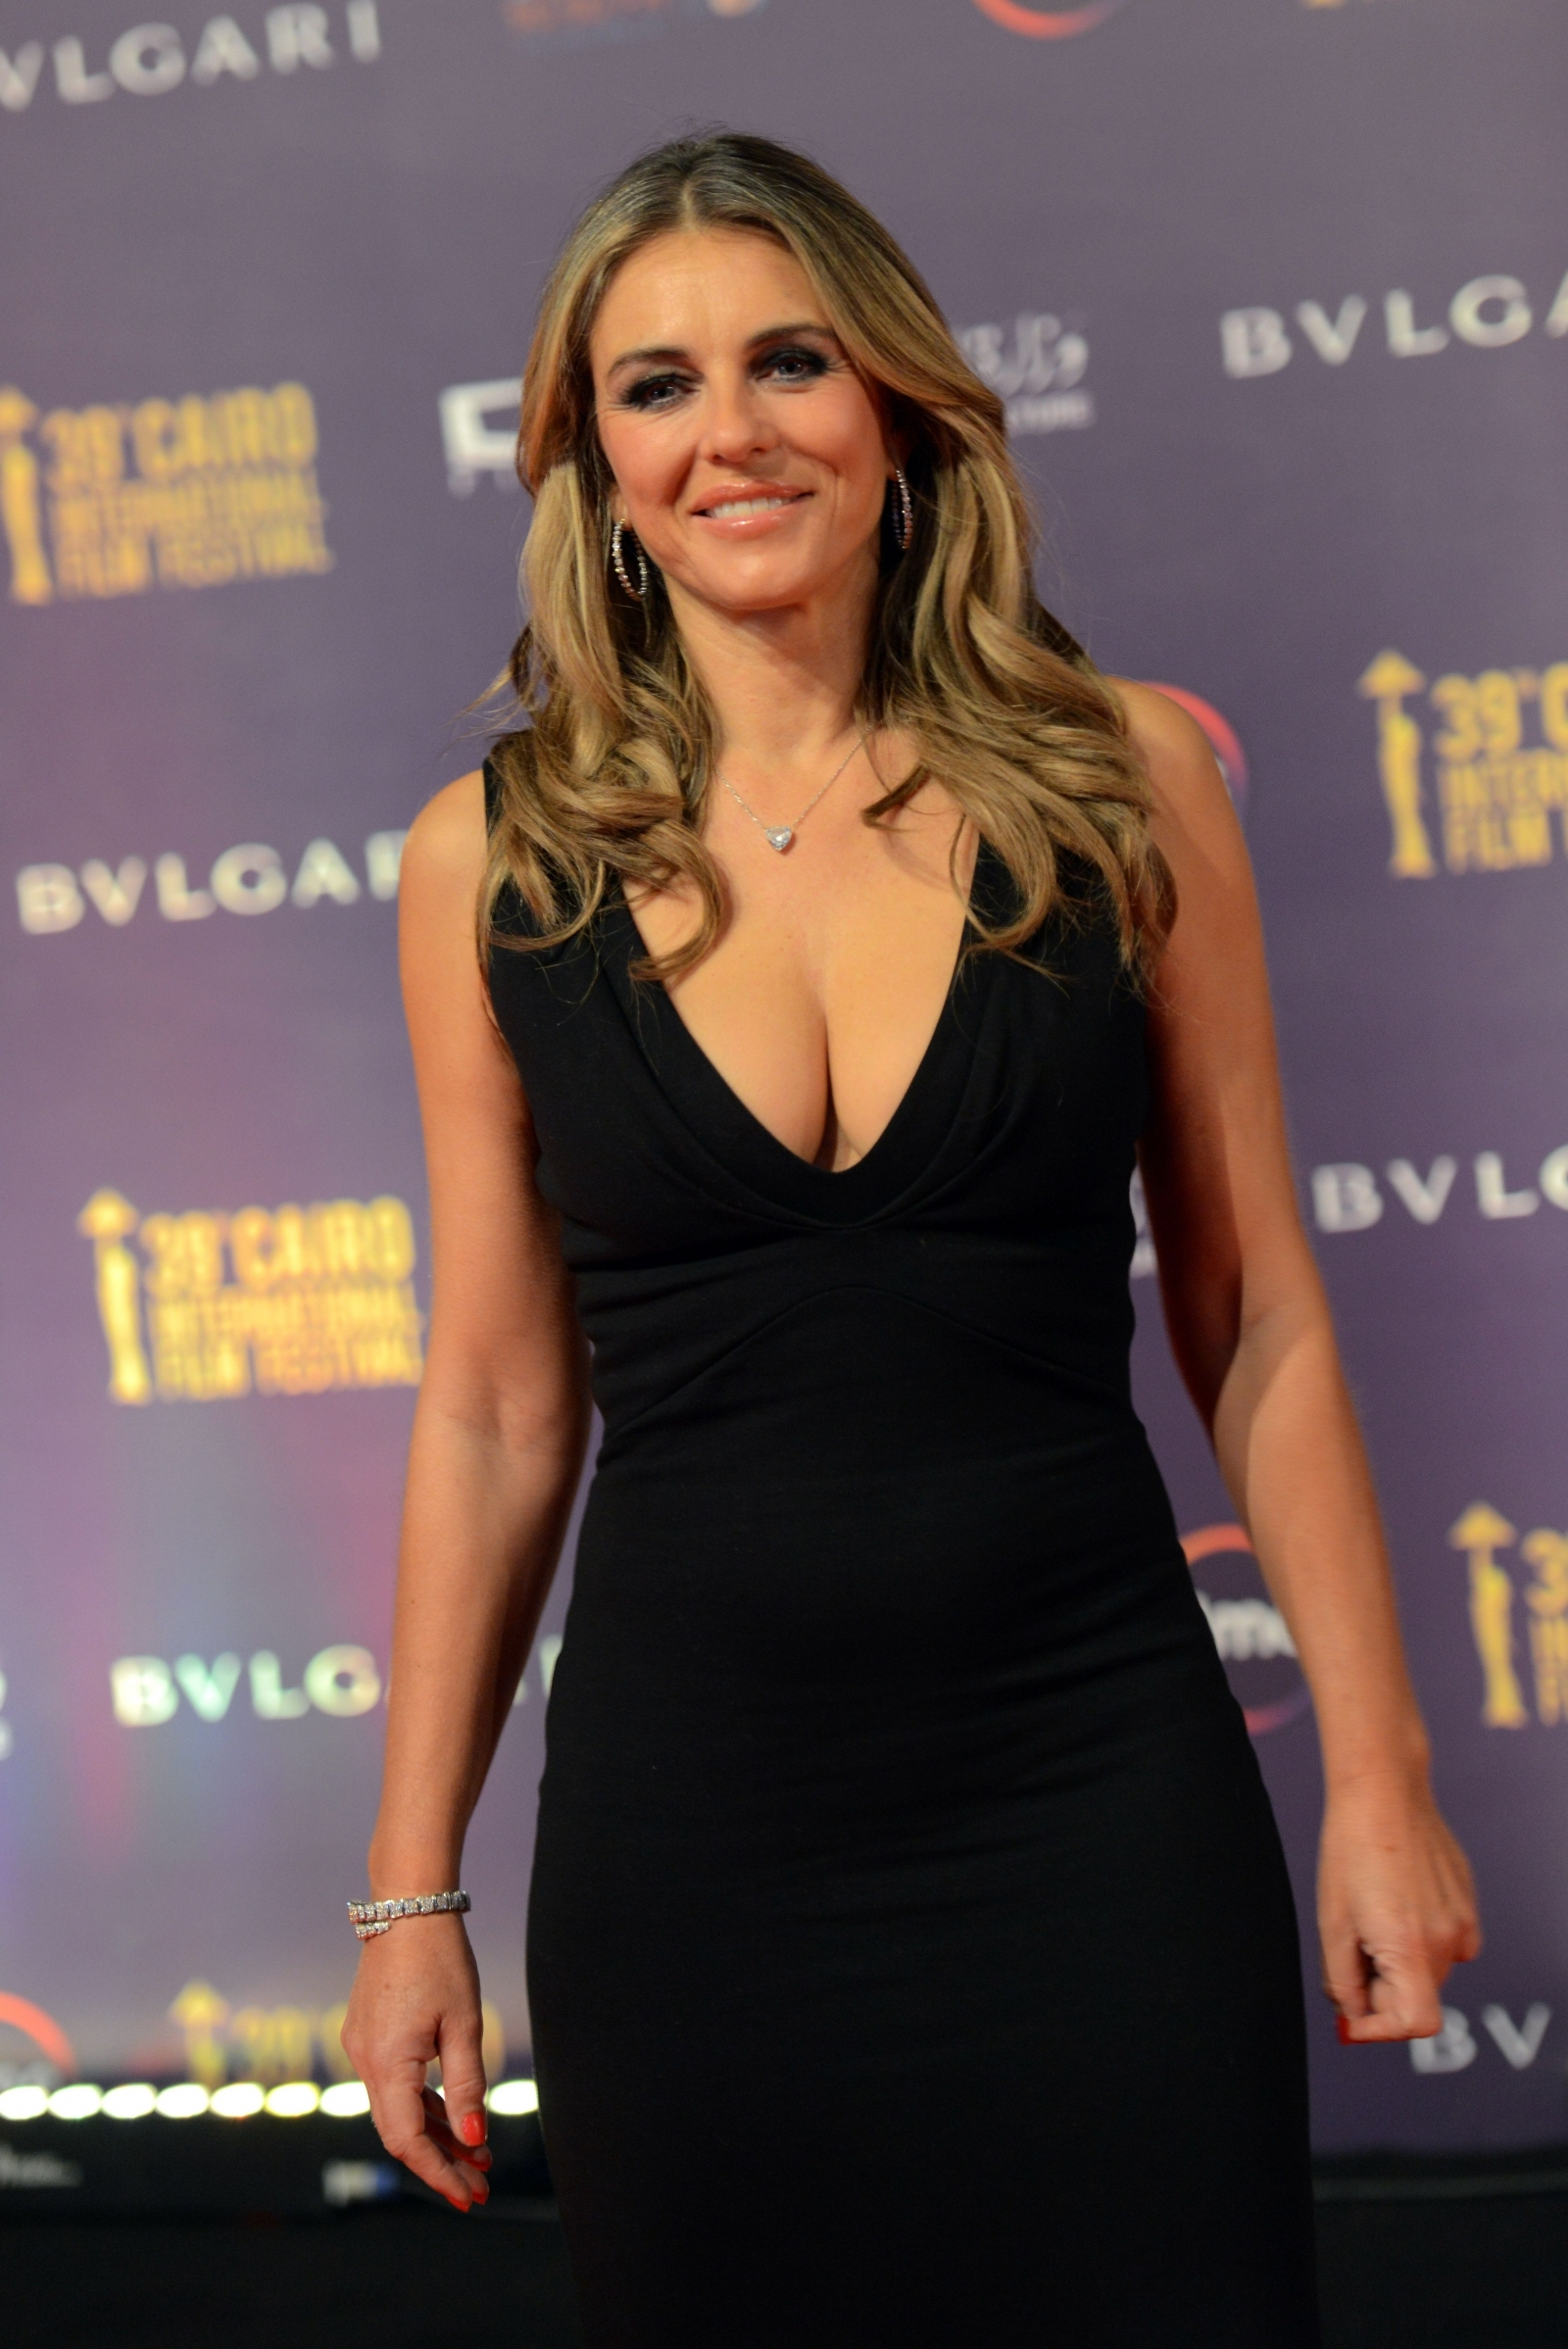 Elizabeth Hurley Stuns In Plunging Black Gown After